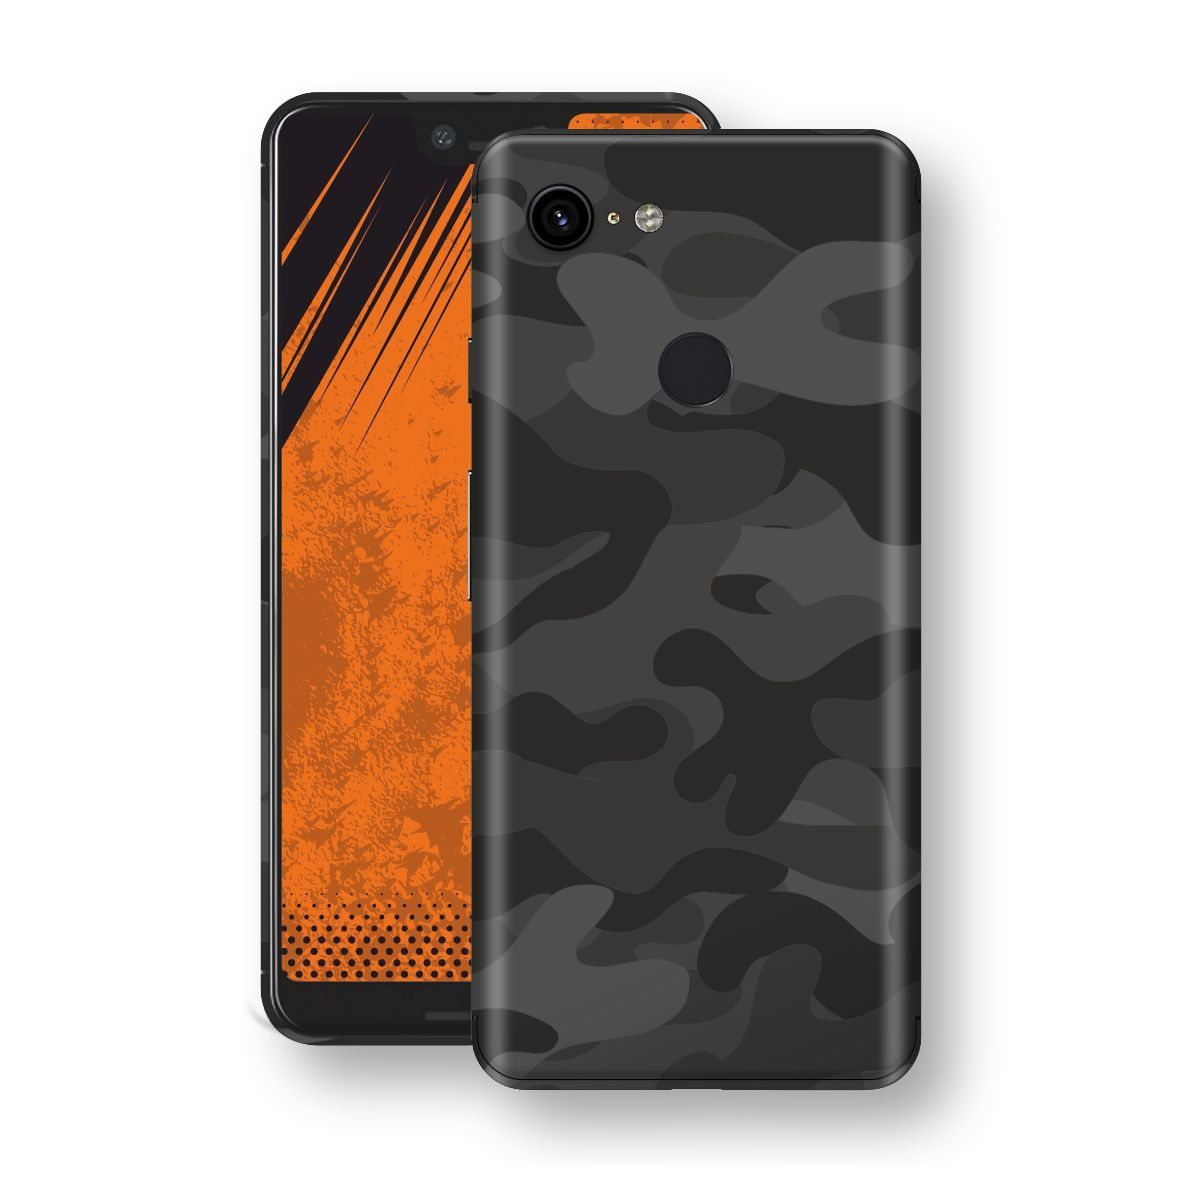 Google Pixel 3 XL Signature DARK SLATE CAMO Camouflage Skin Wrap Decal Cover by EasySkinz